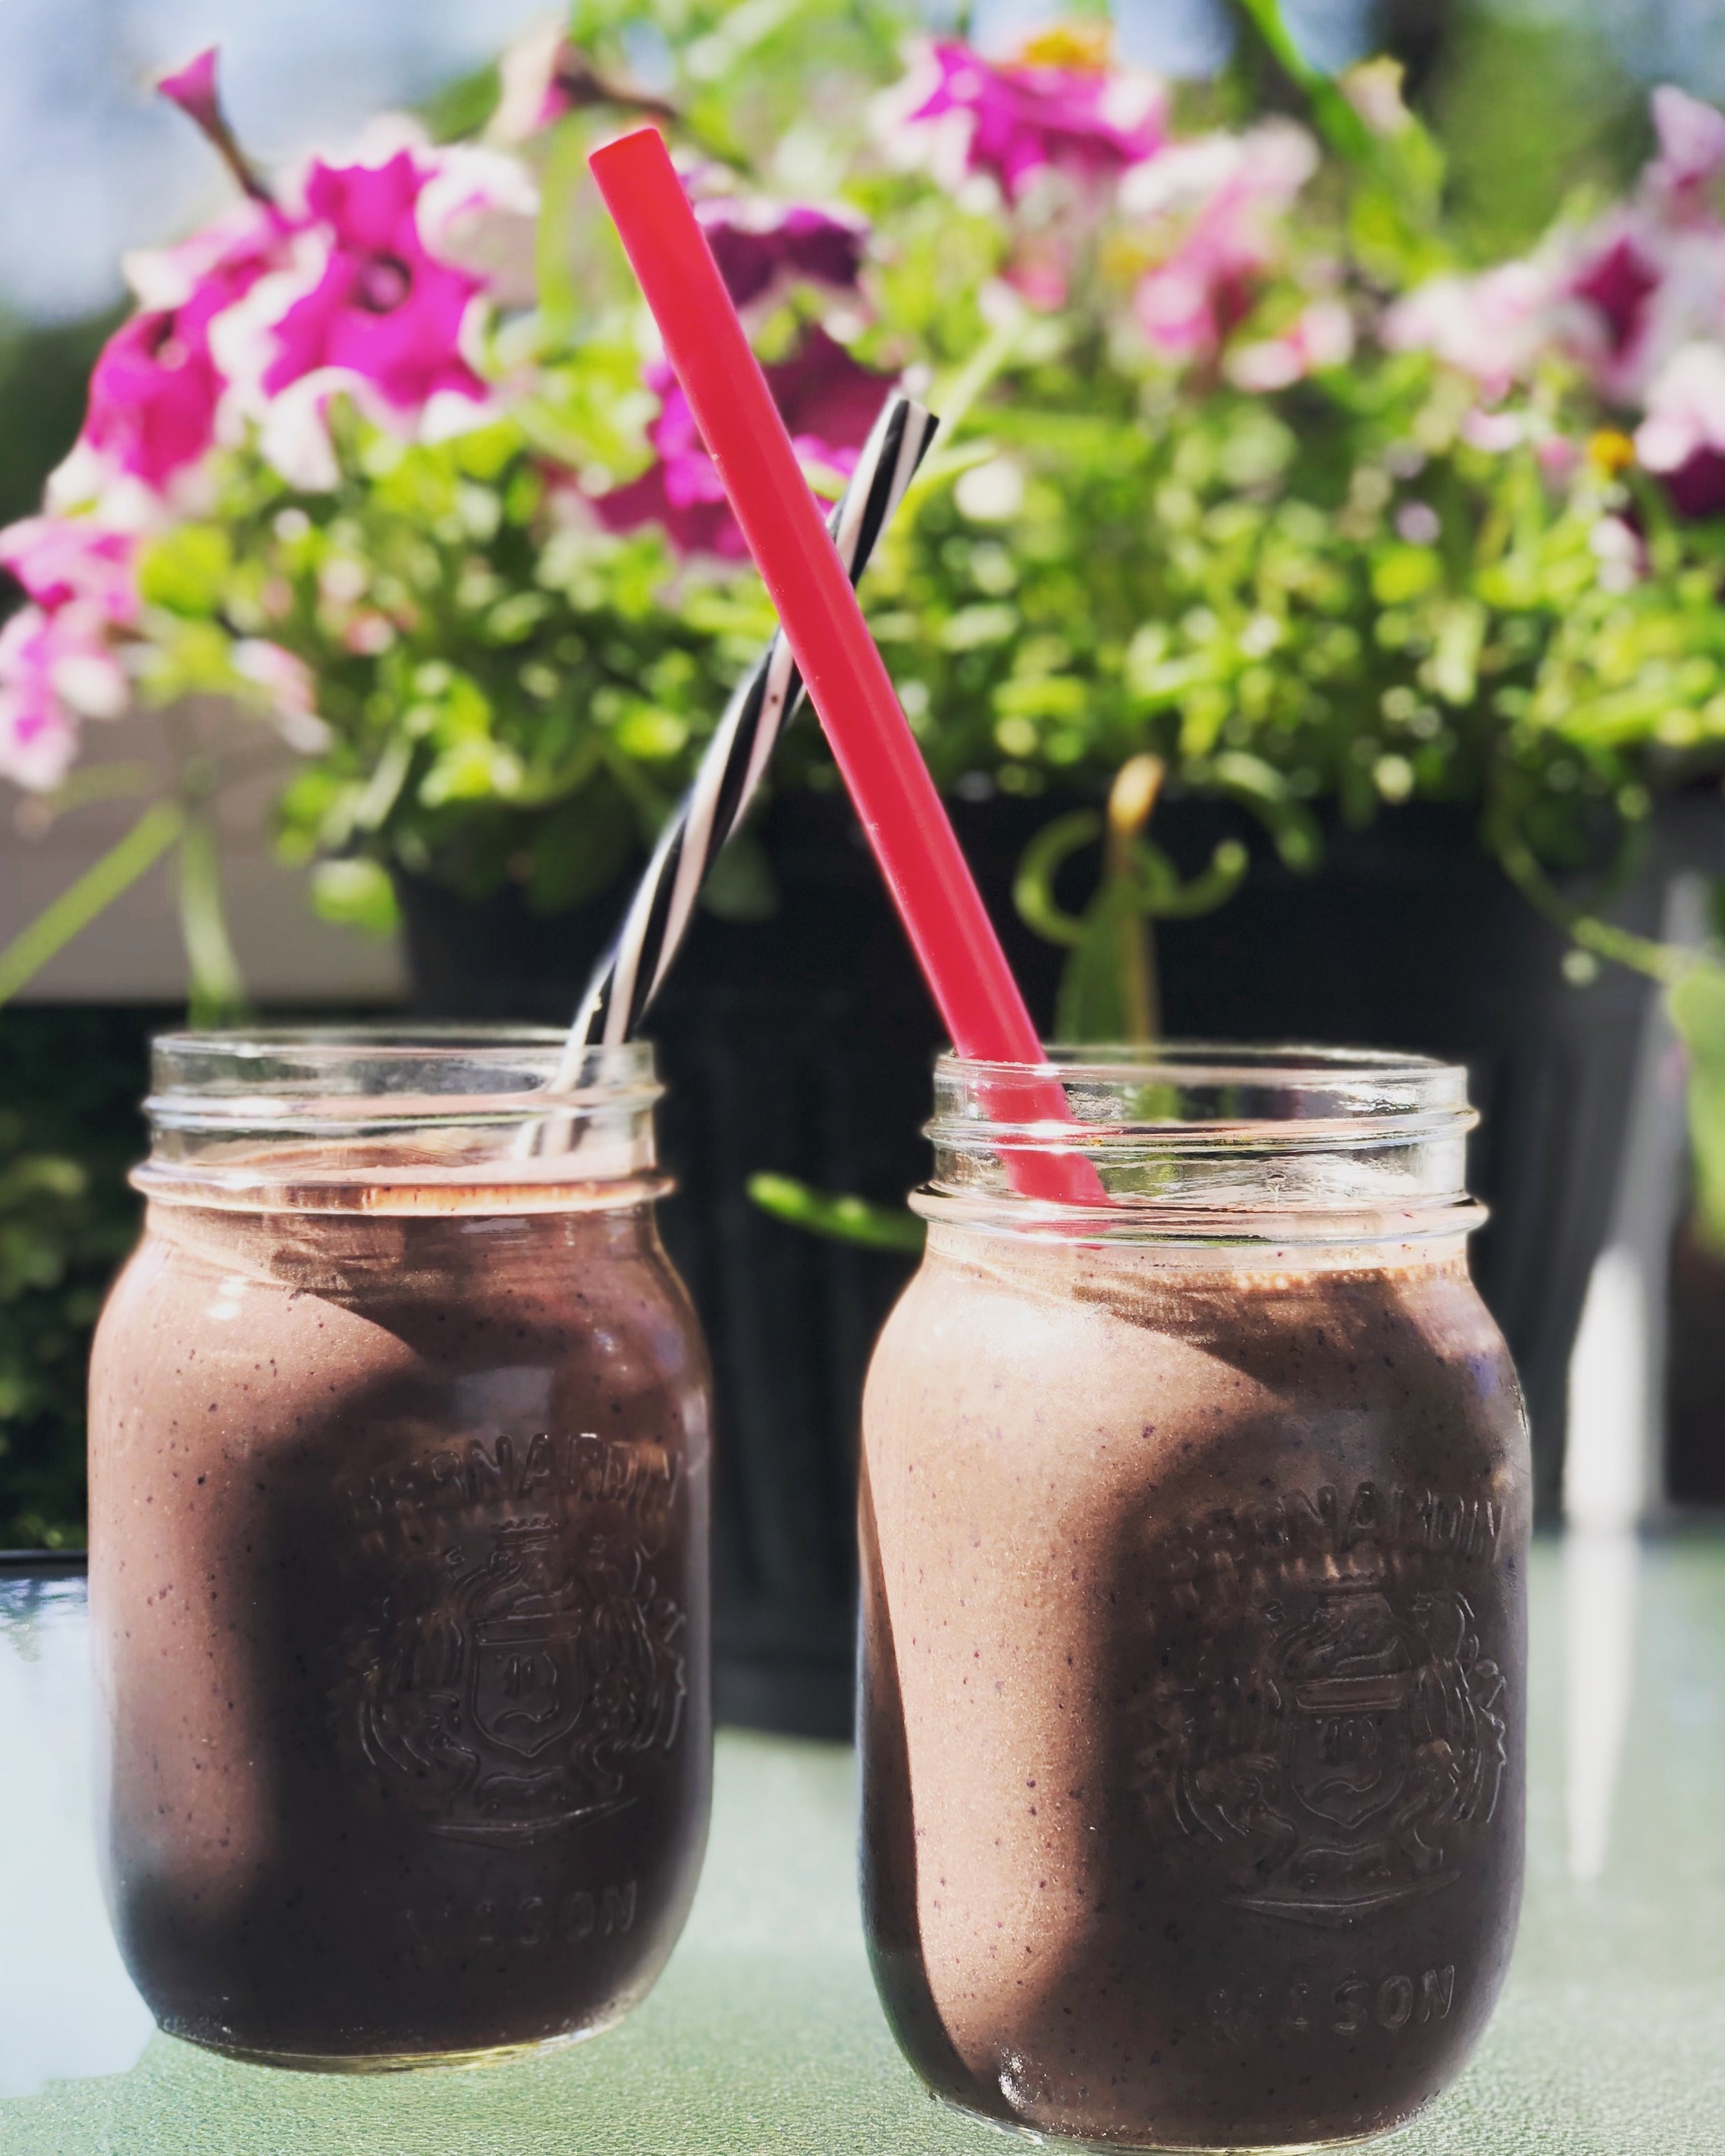 Smoothie Choco-banane post-course